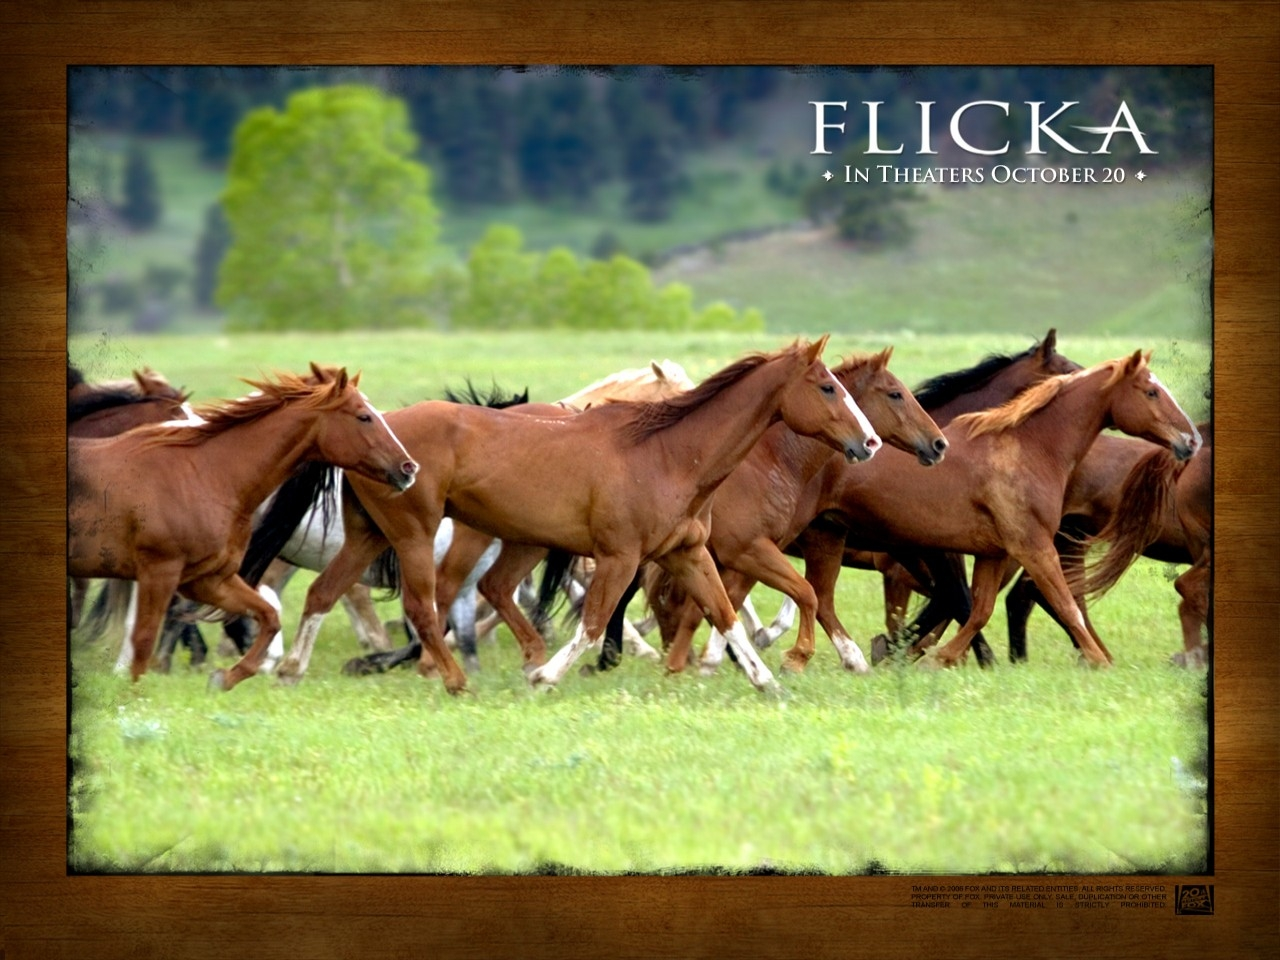 Wallpaper del film Flicka - Uno Spirito libero (2006)